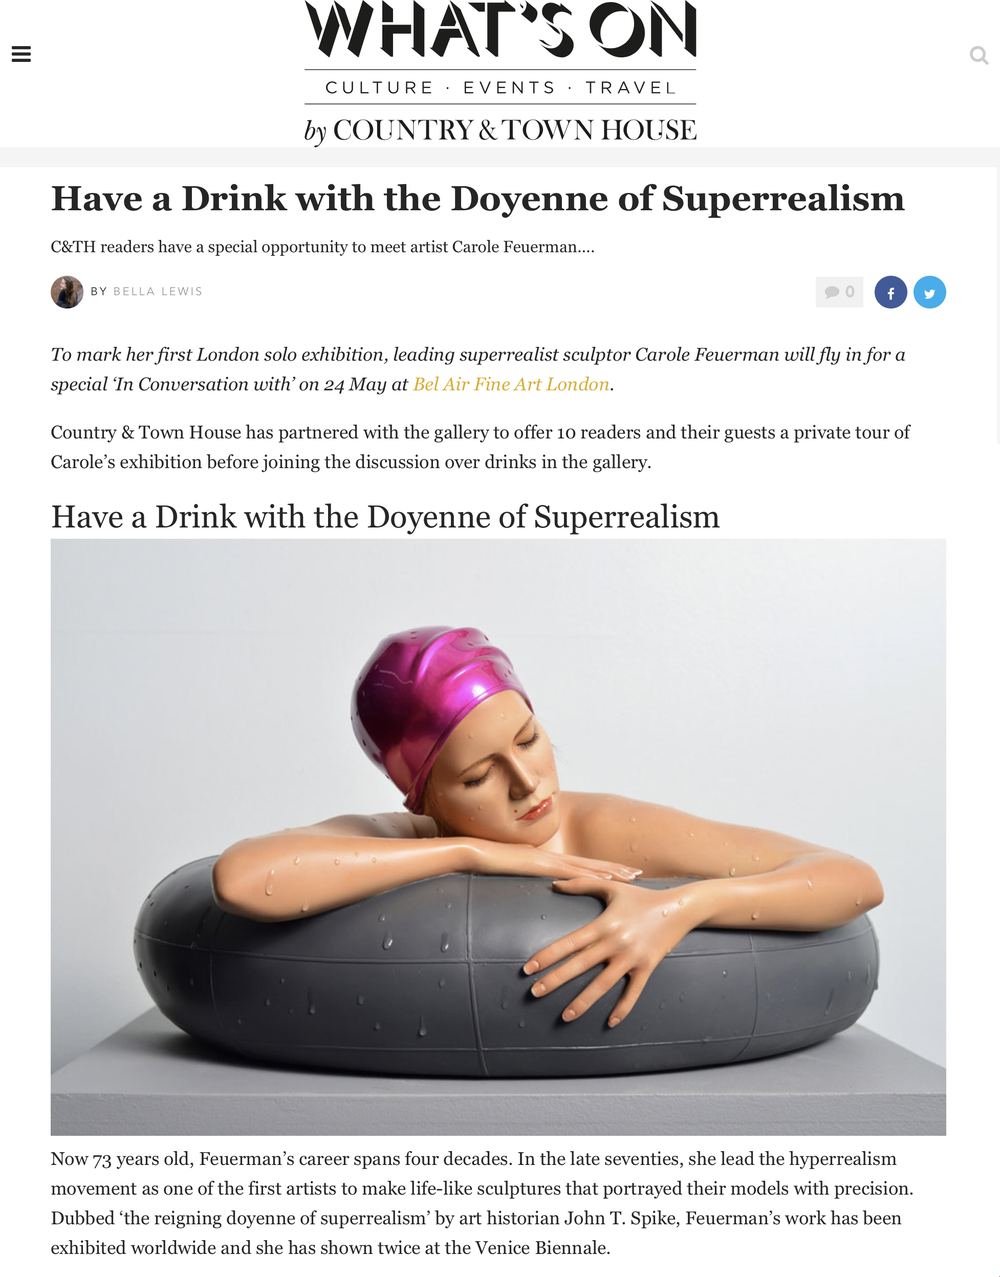 Have a Drink with the Doyenne of Superrealism